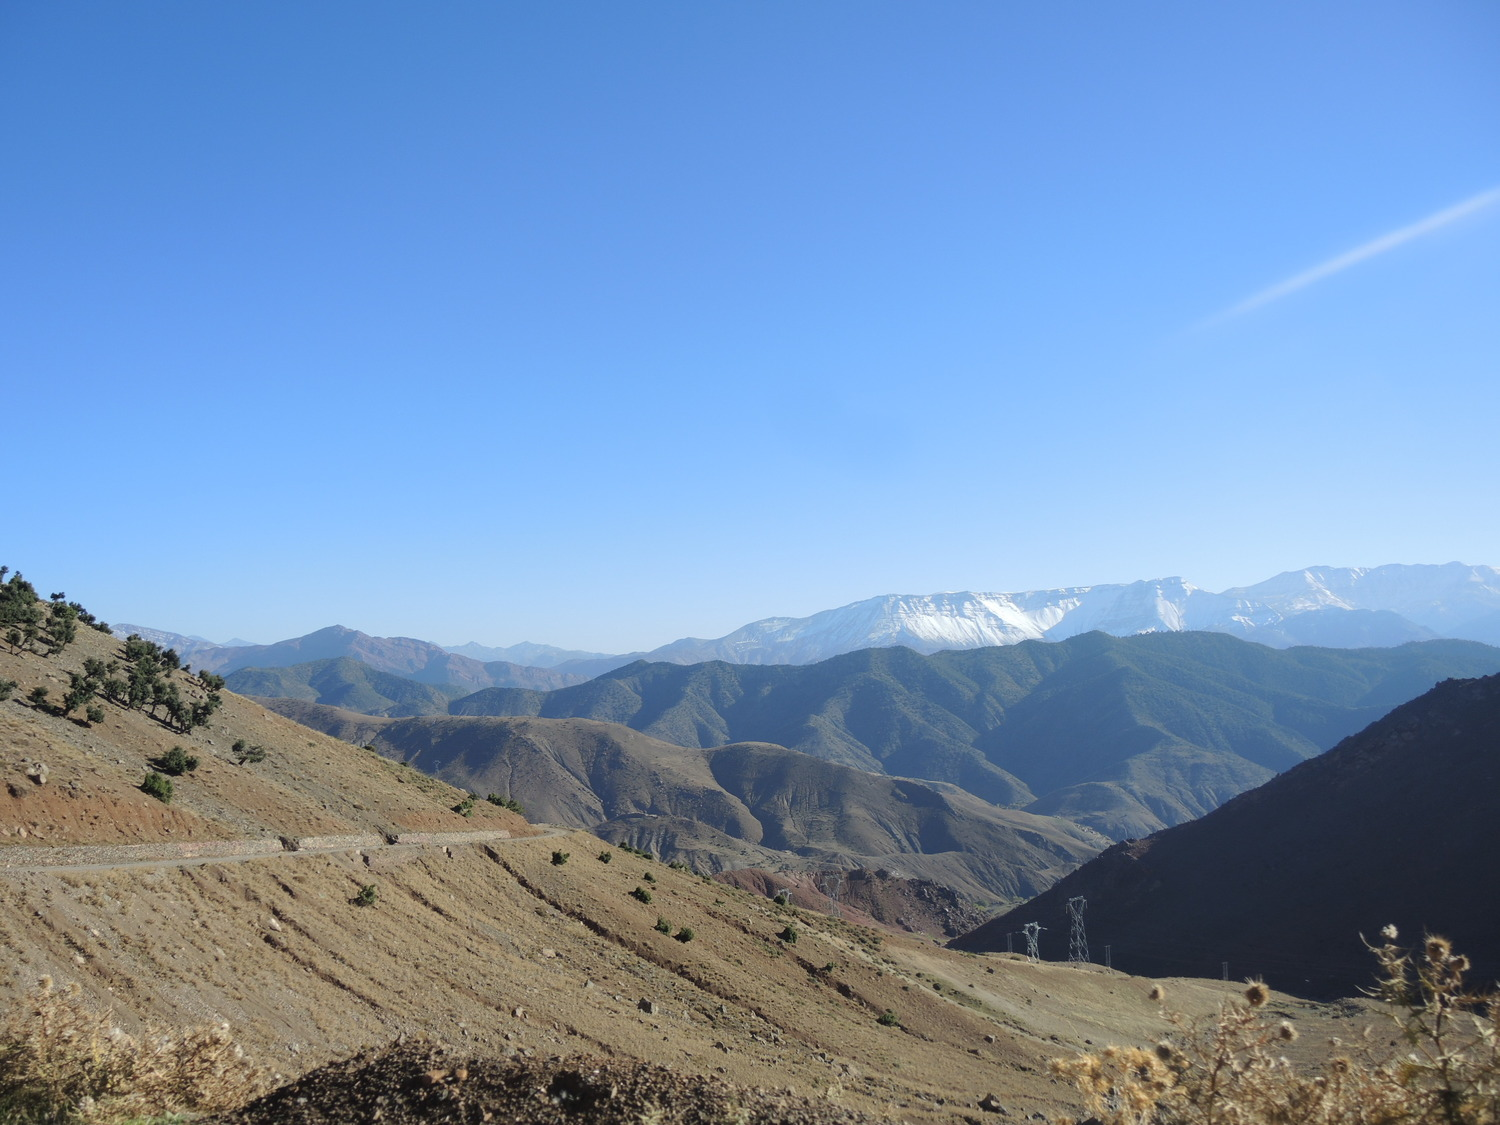 Snowy mountain tops in the Atlas Mountains